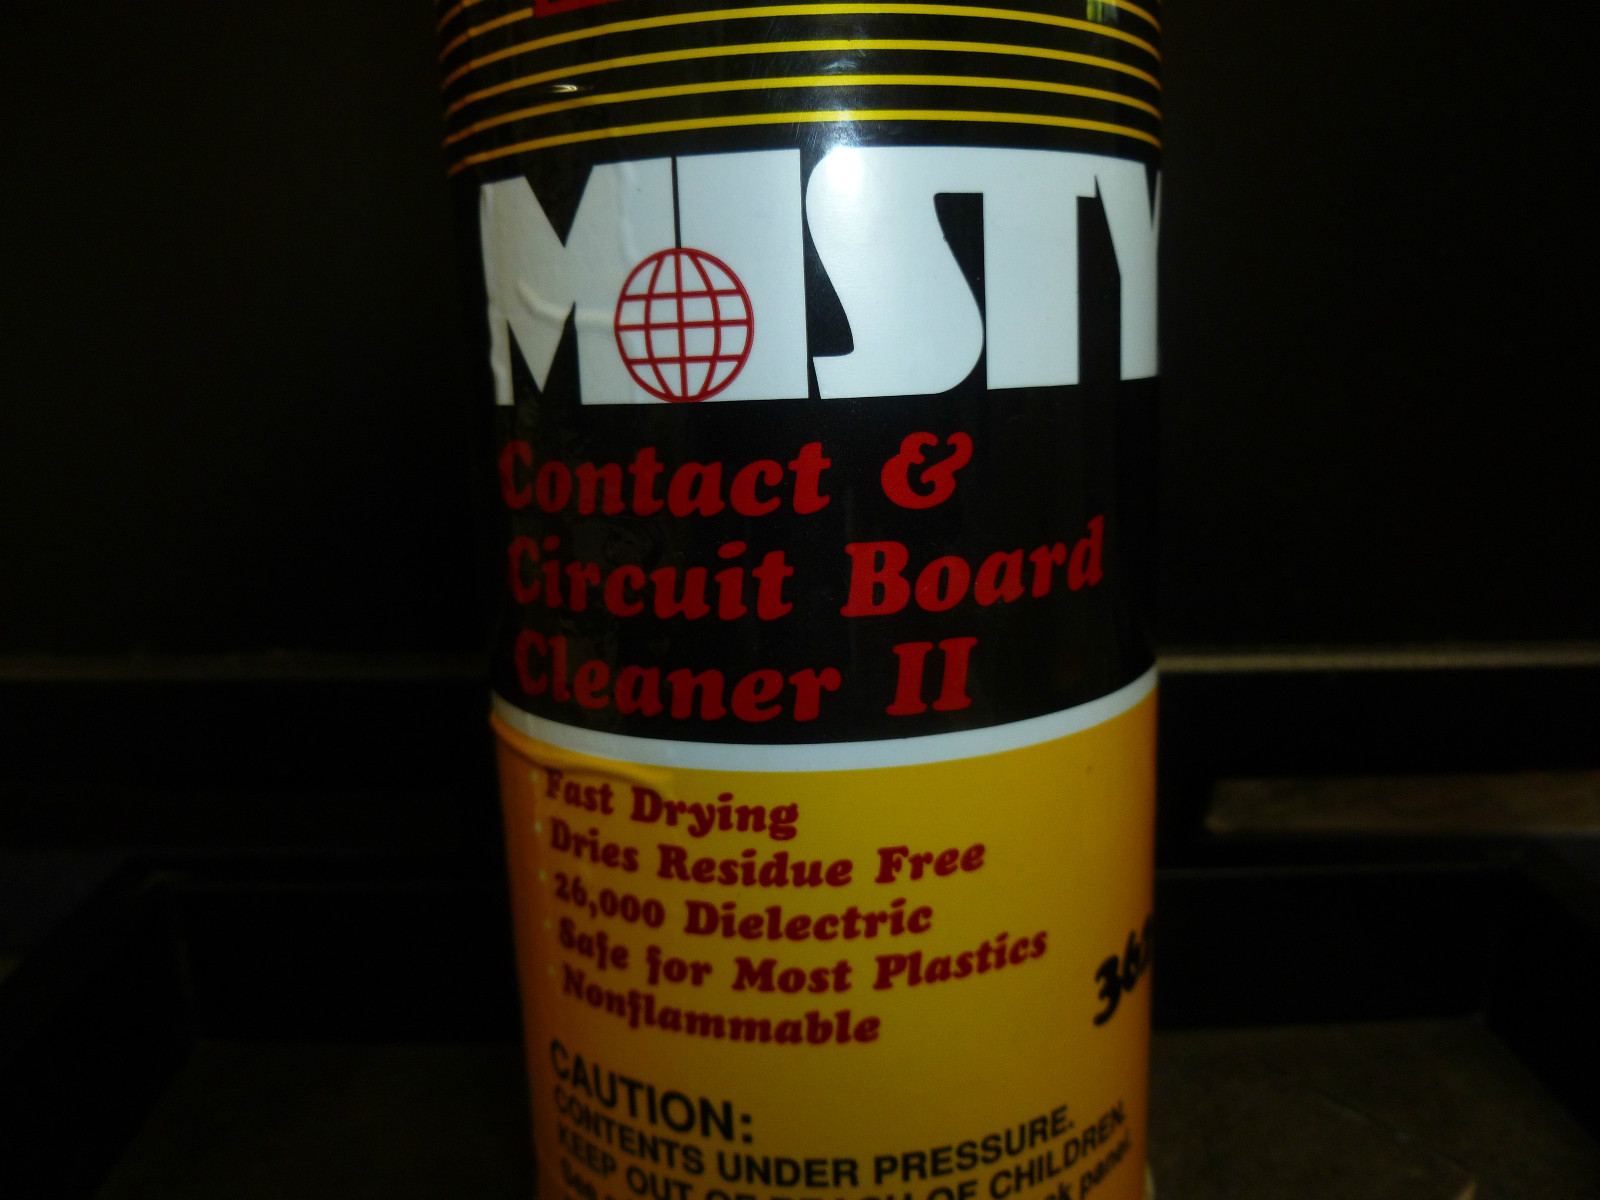 Misty Contact And Circuit Board Cleaner II 362-16 Fast Drying Net Wt. 14 Oz